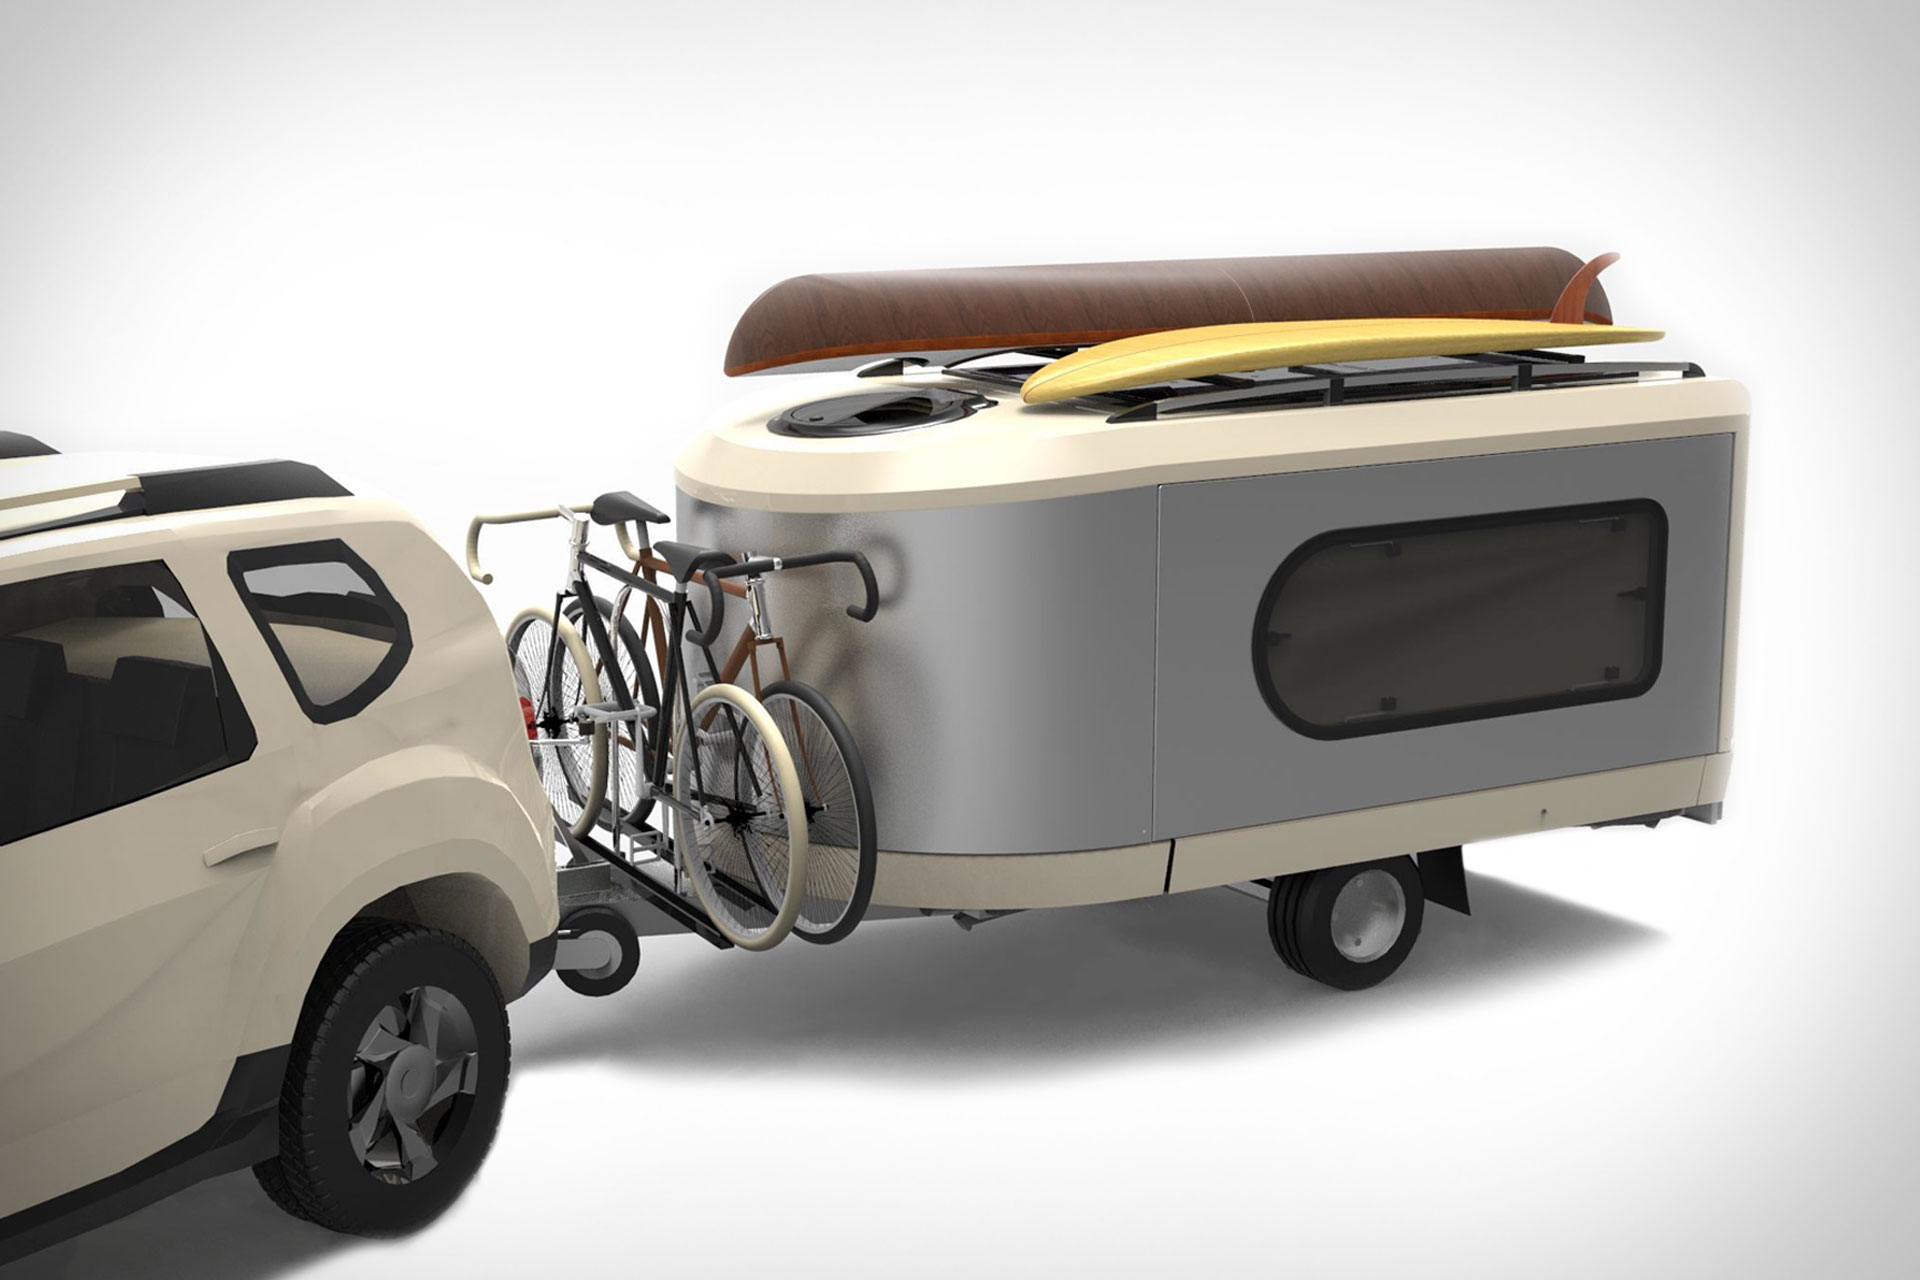 Tipoon Expandable Trailer Uncrate